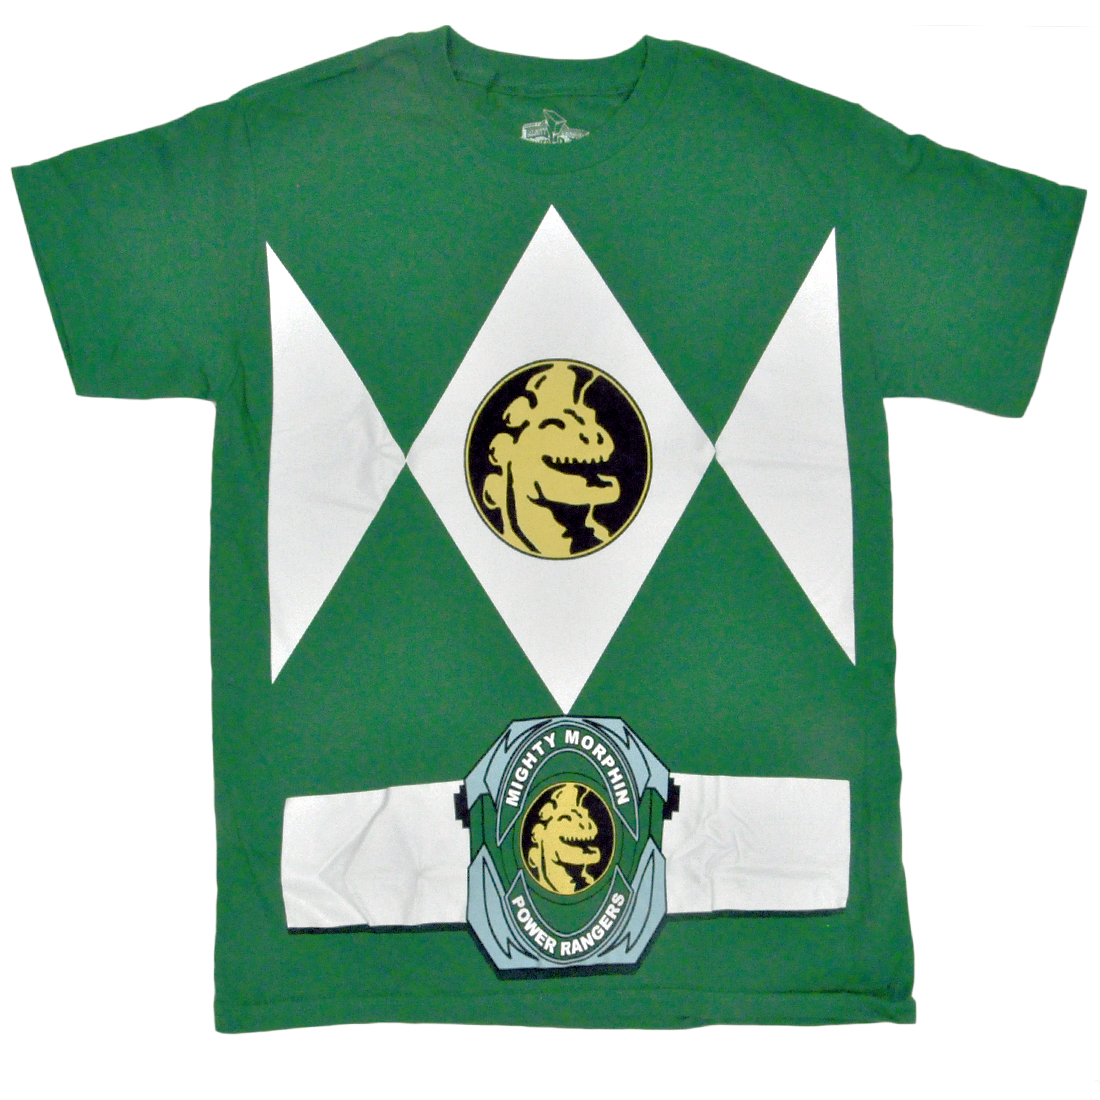 Authentic Mighty Morphin Power Rangers Adult Men's Green Costume T-shirt